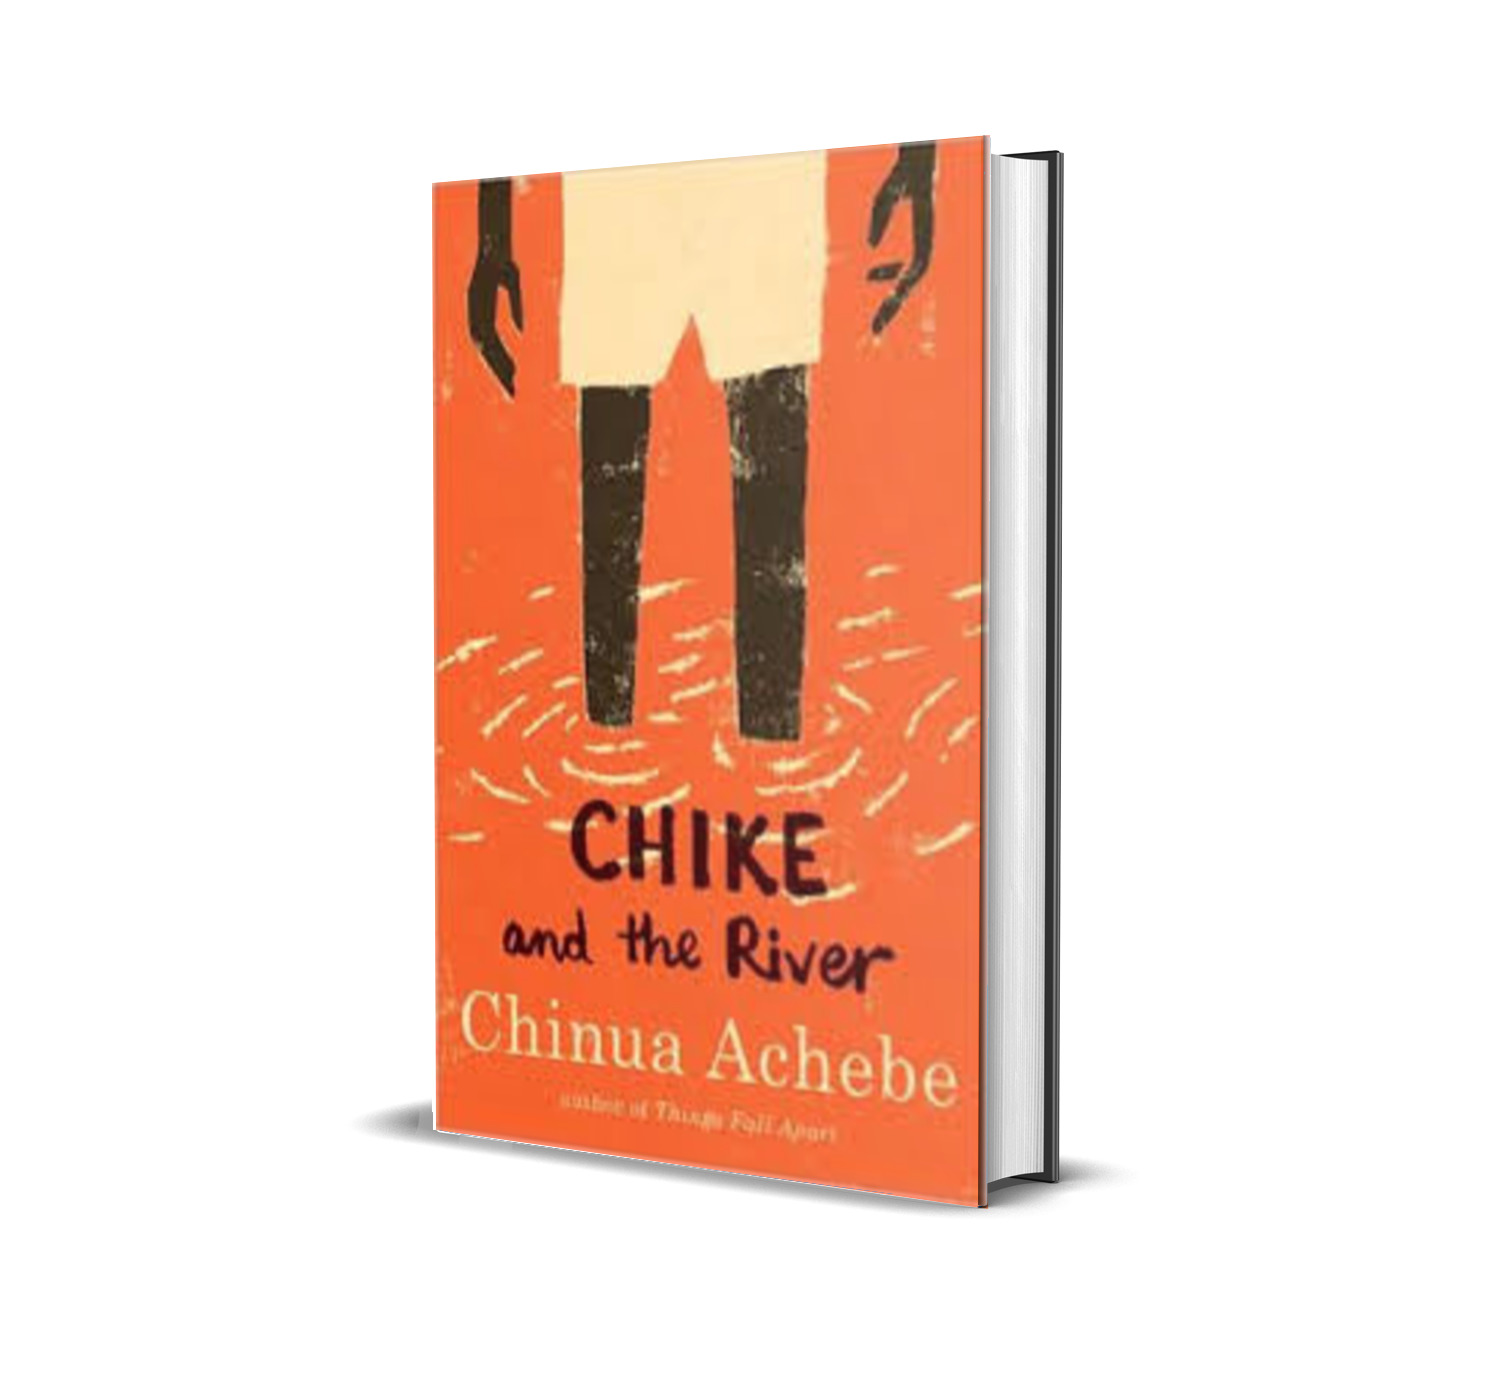 Chike and the river- chinua achebe